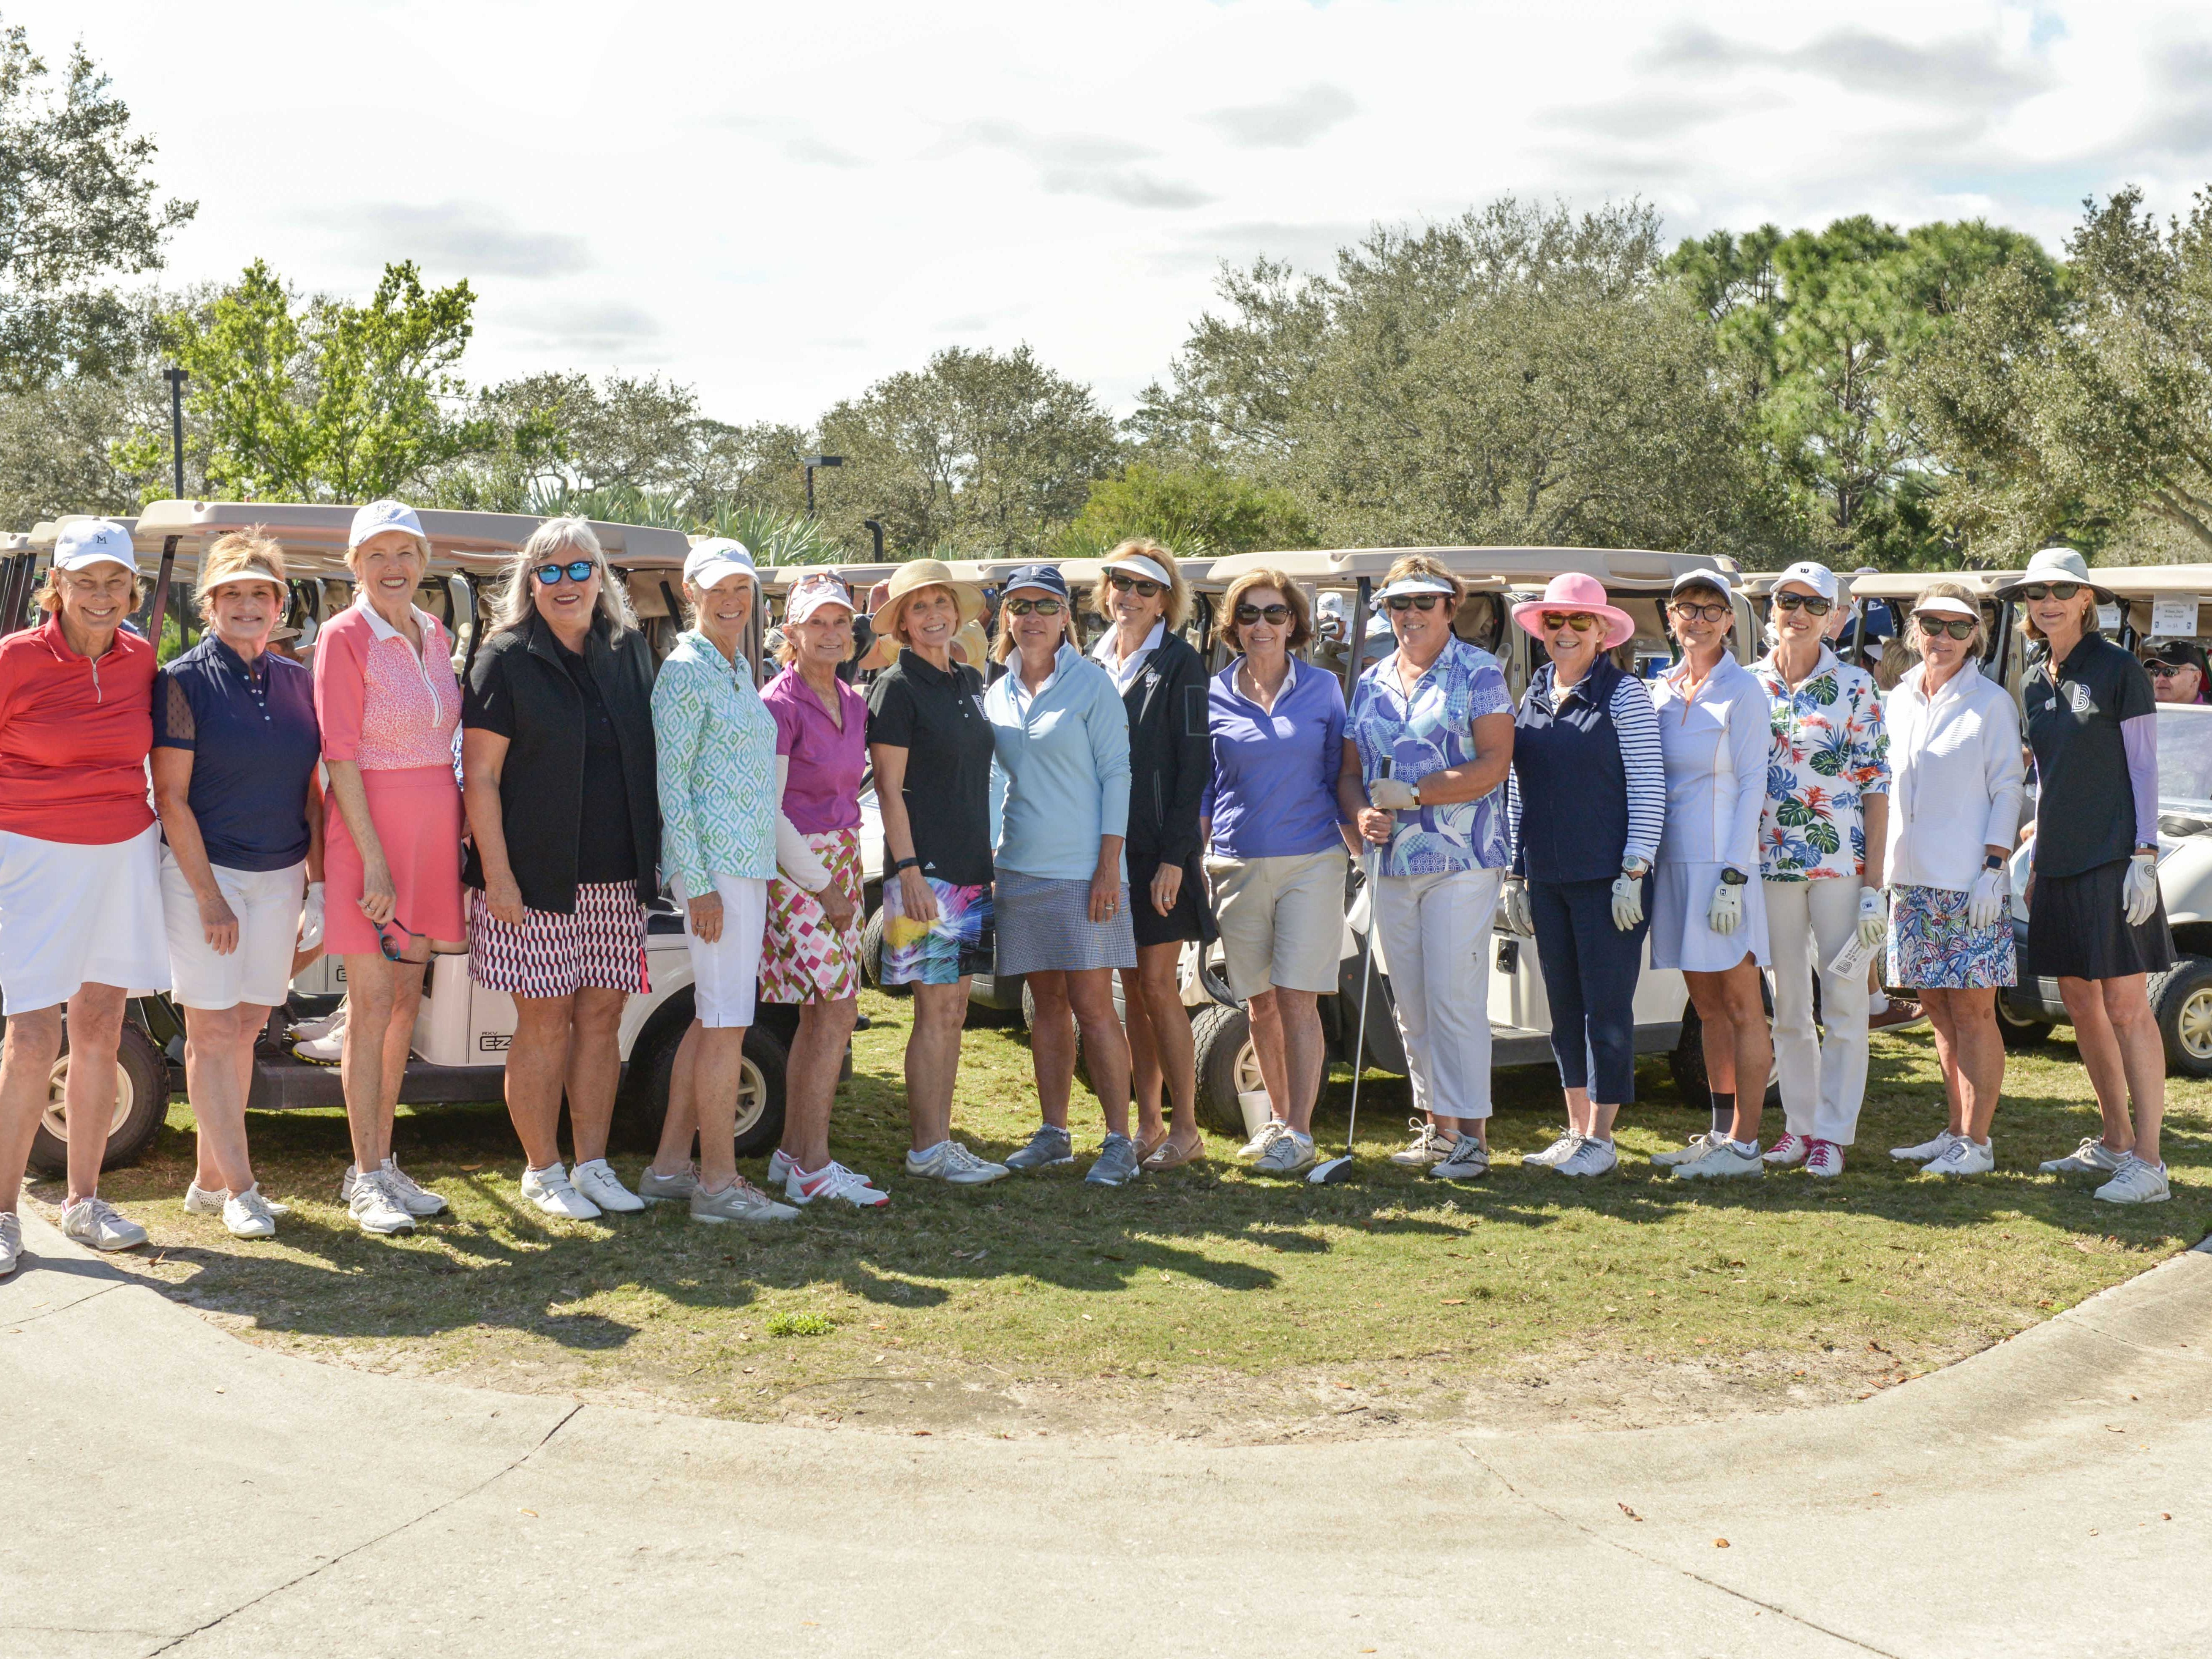 Big Brothers Big Sisters of St. Lucie, Indian River & Okeechobee Counties' eighth annual golf tournament drew 74 women and men to the links at The Moorings at Hawk's Nest Golf Club on Feb. 4.